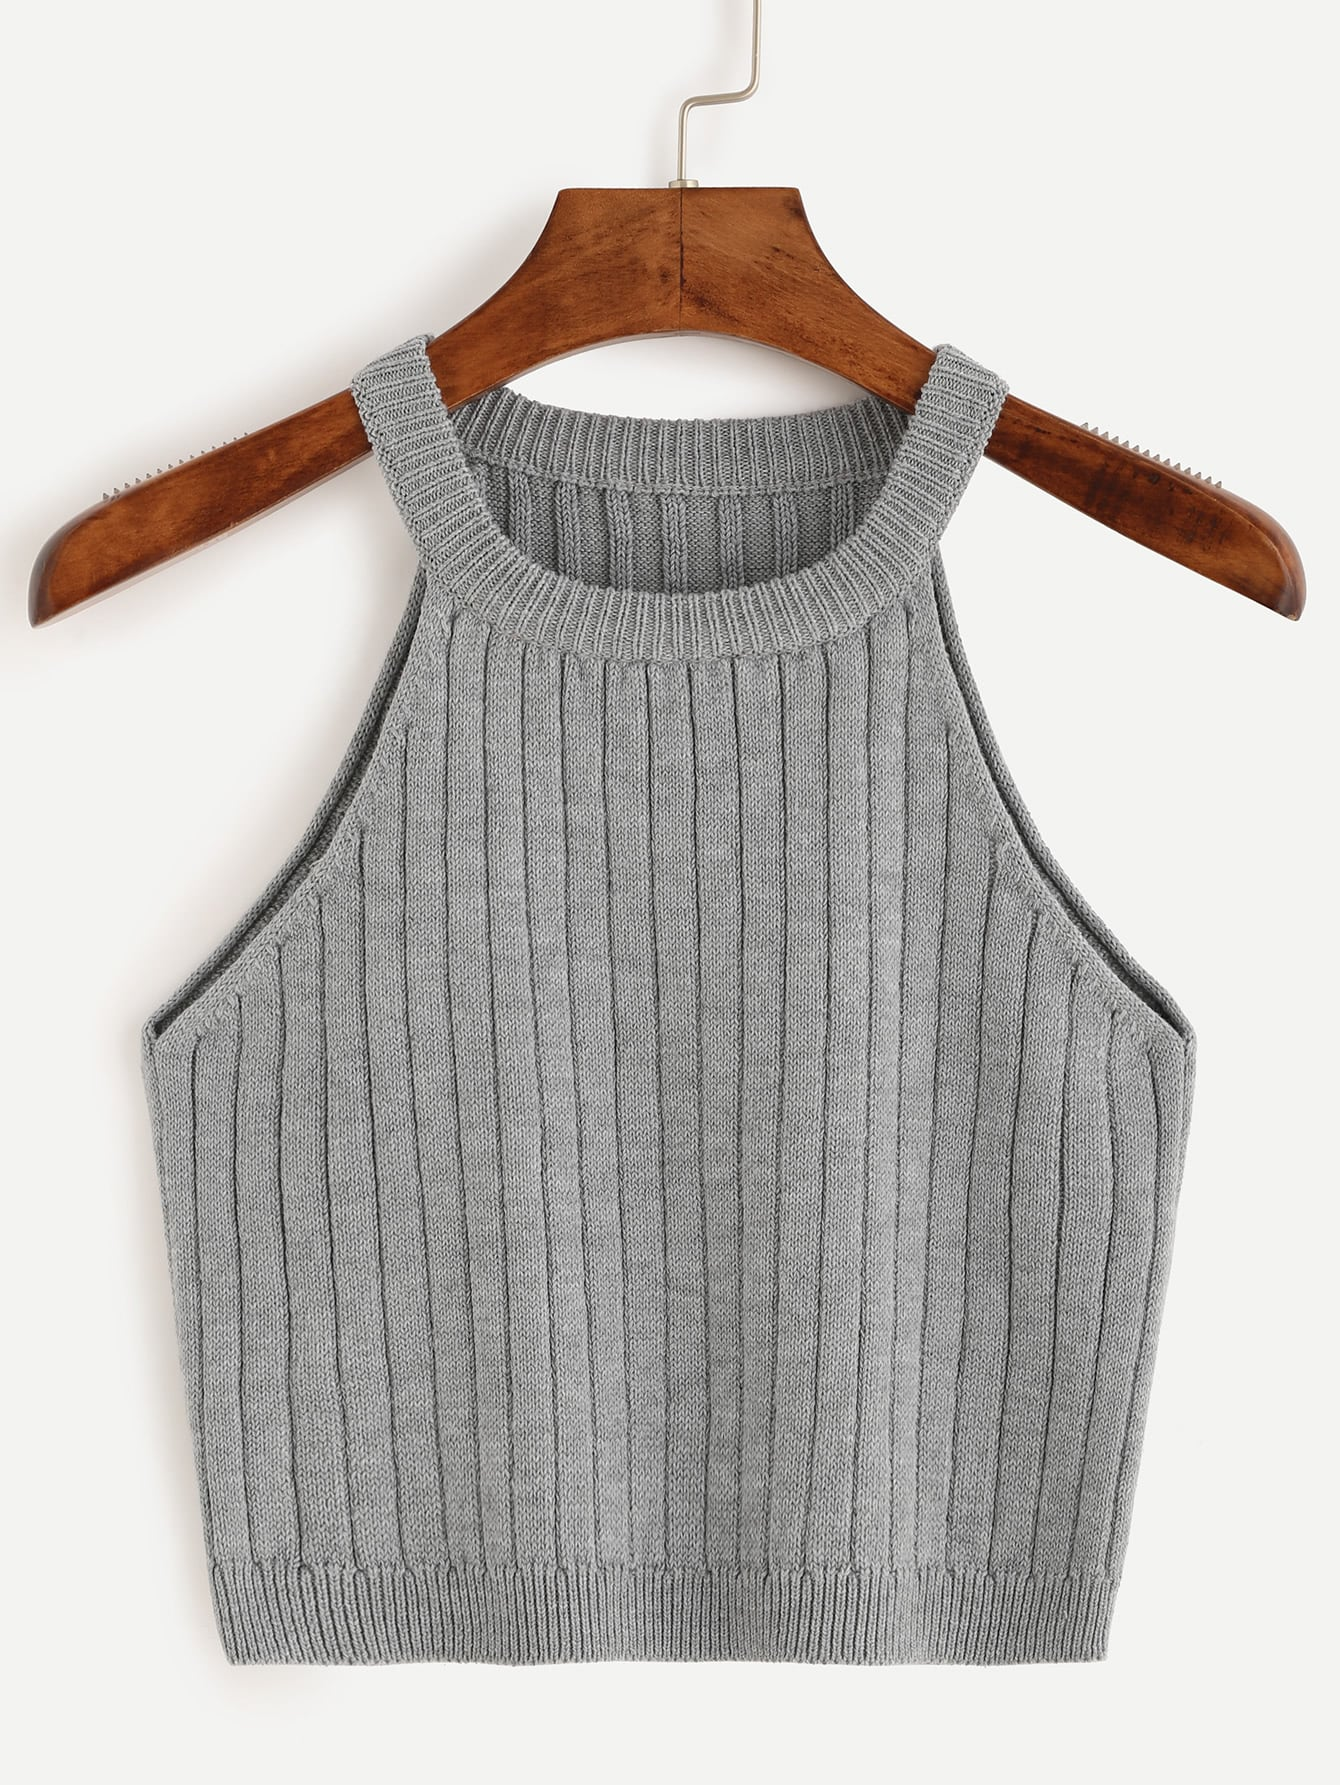 Ribbed Knitted Tank Top vest160704525